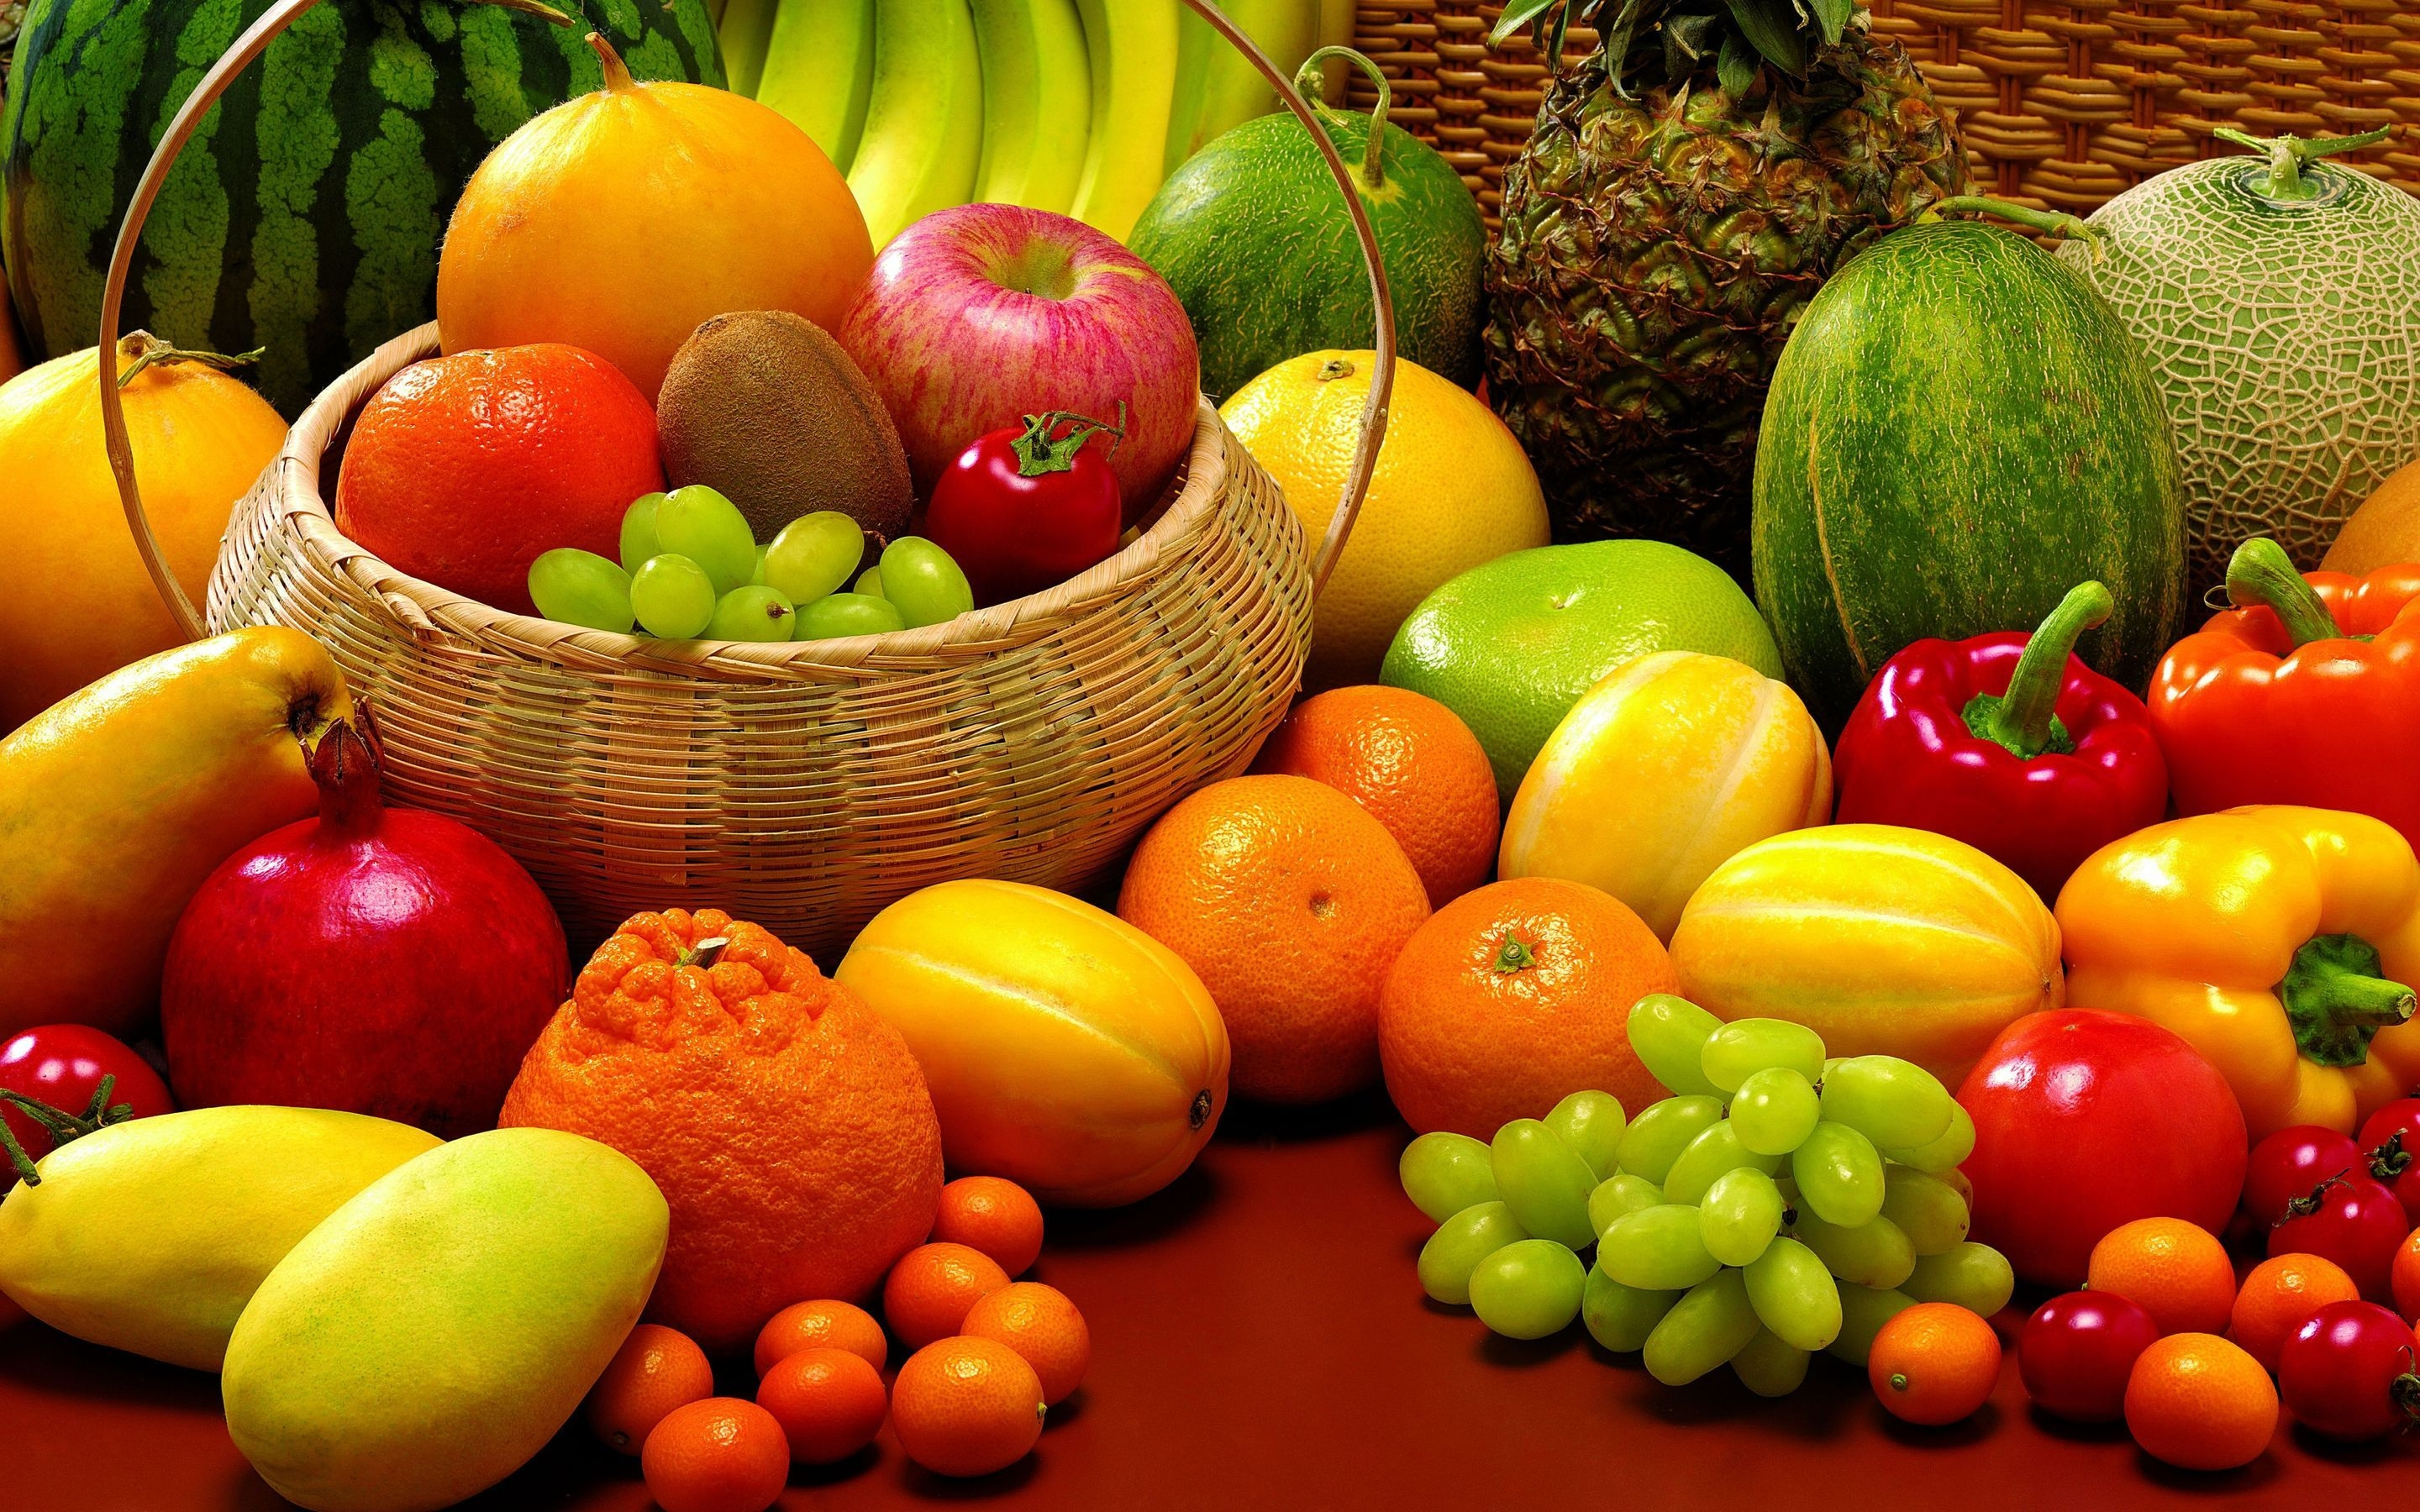 Fruits and Veggies for 2880 x 1800 Retina Display resolution